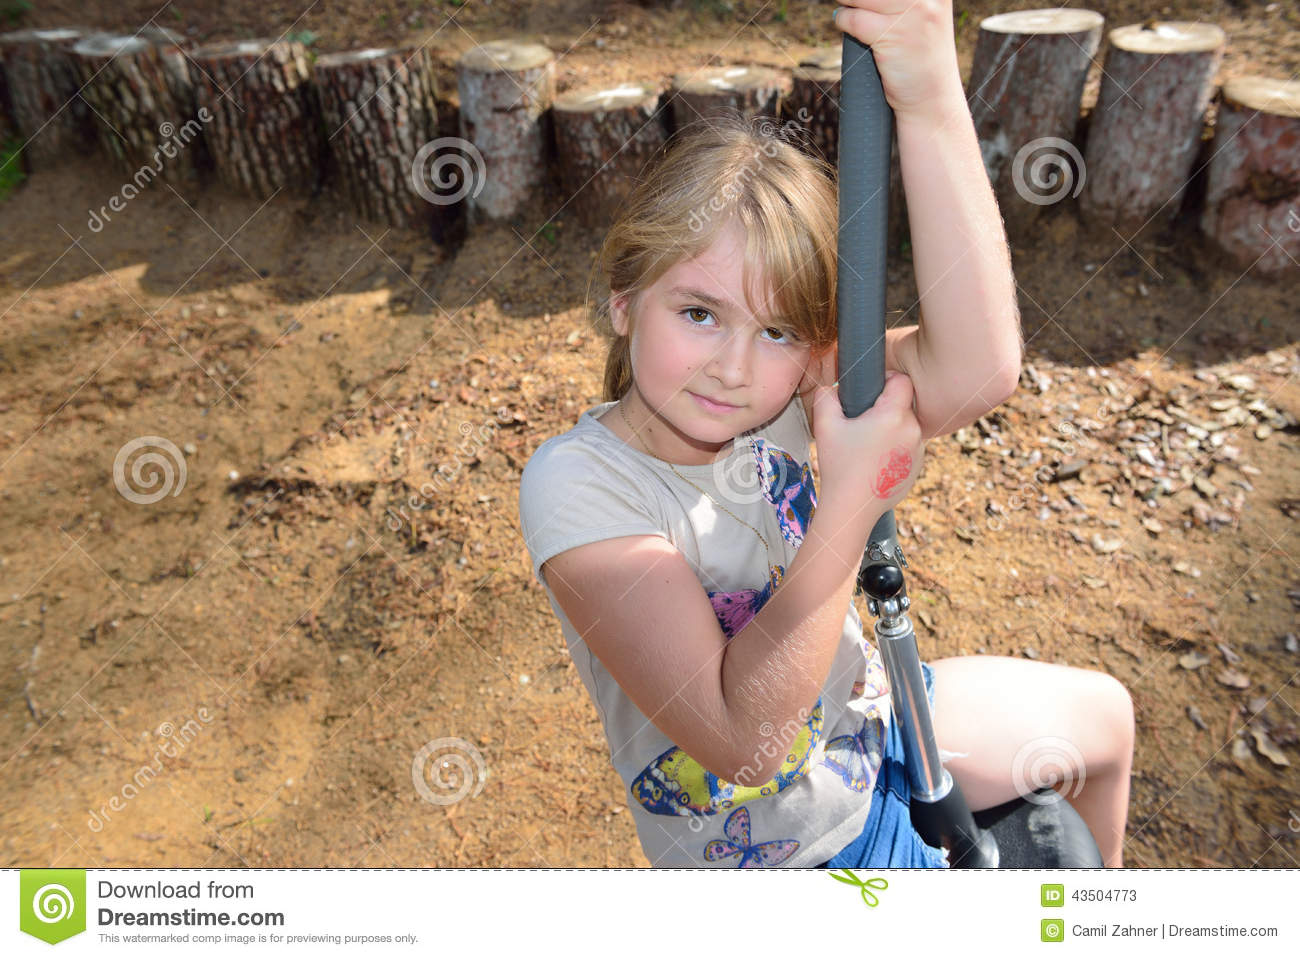 Little Girl In An Adventure Park Stock Photo - Image: 43504773